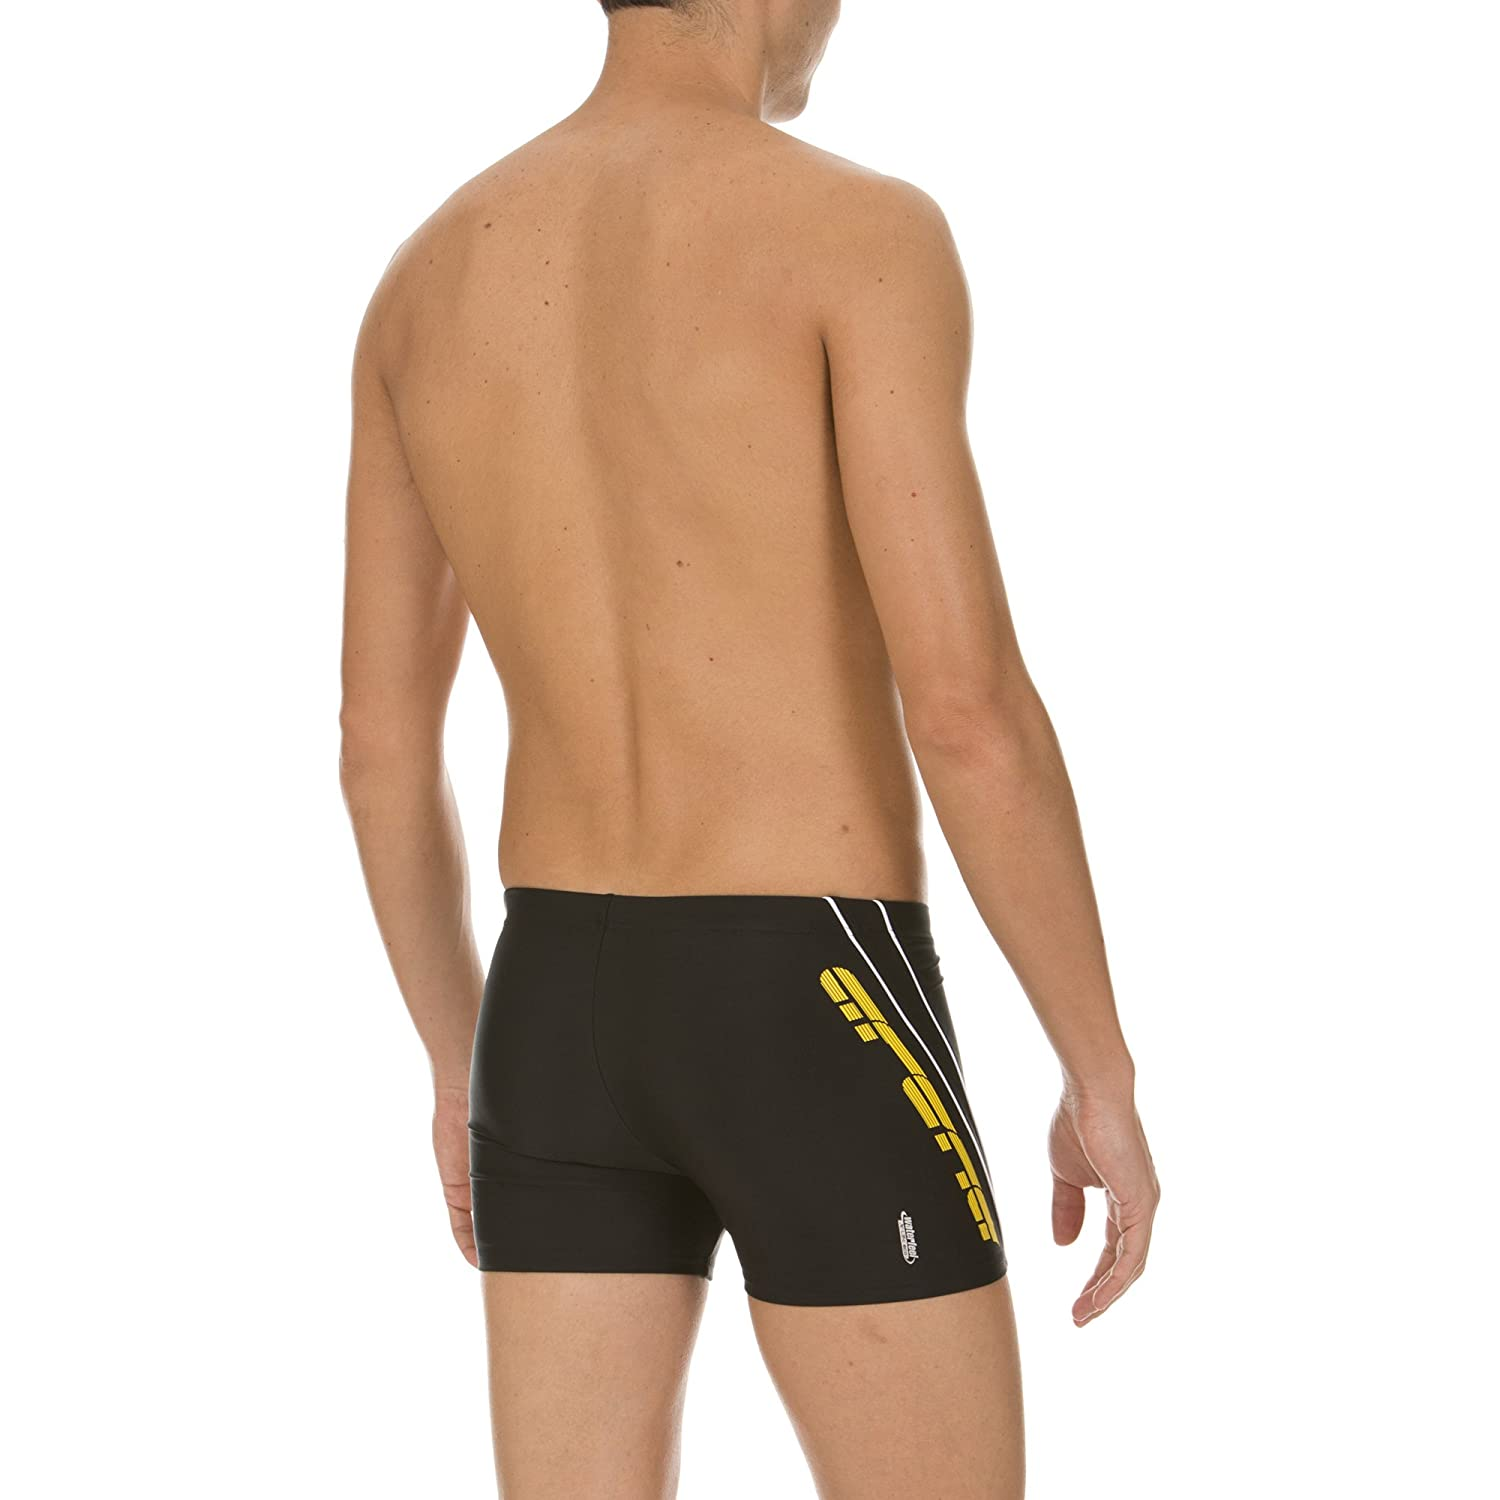 Arena Bystar Men's Swim Shorts